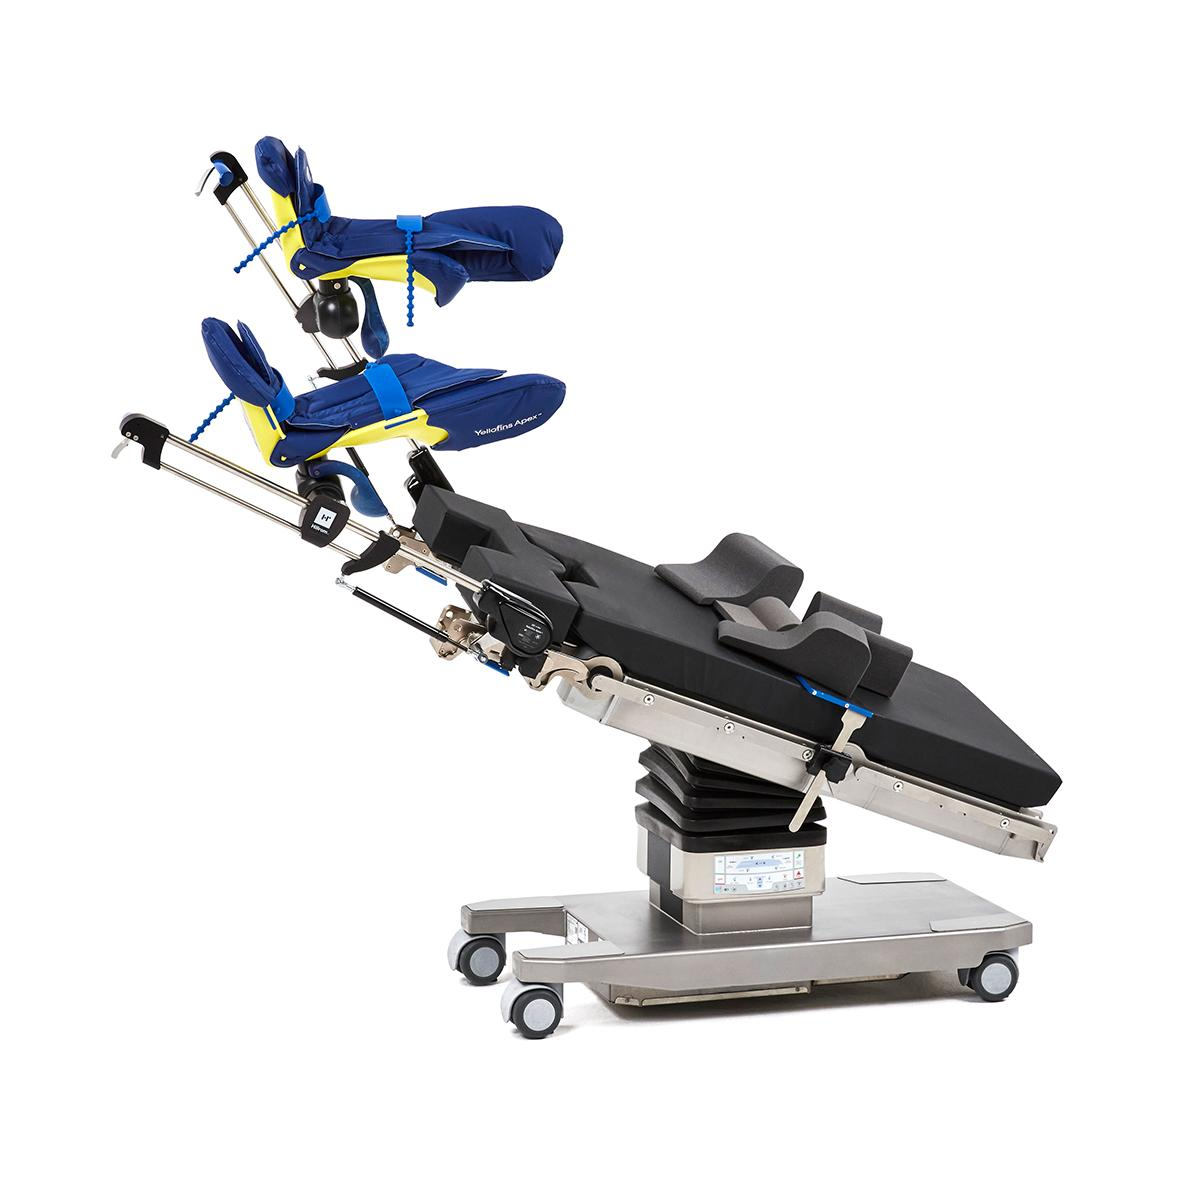 Hillrom surgical table equipped with Yellofins Apex Advanced Stirrup accessories for positioning patients.